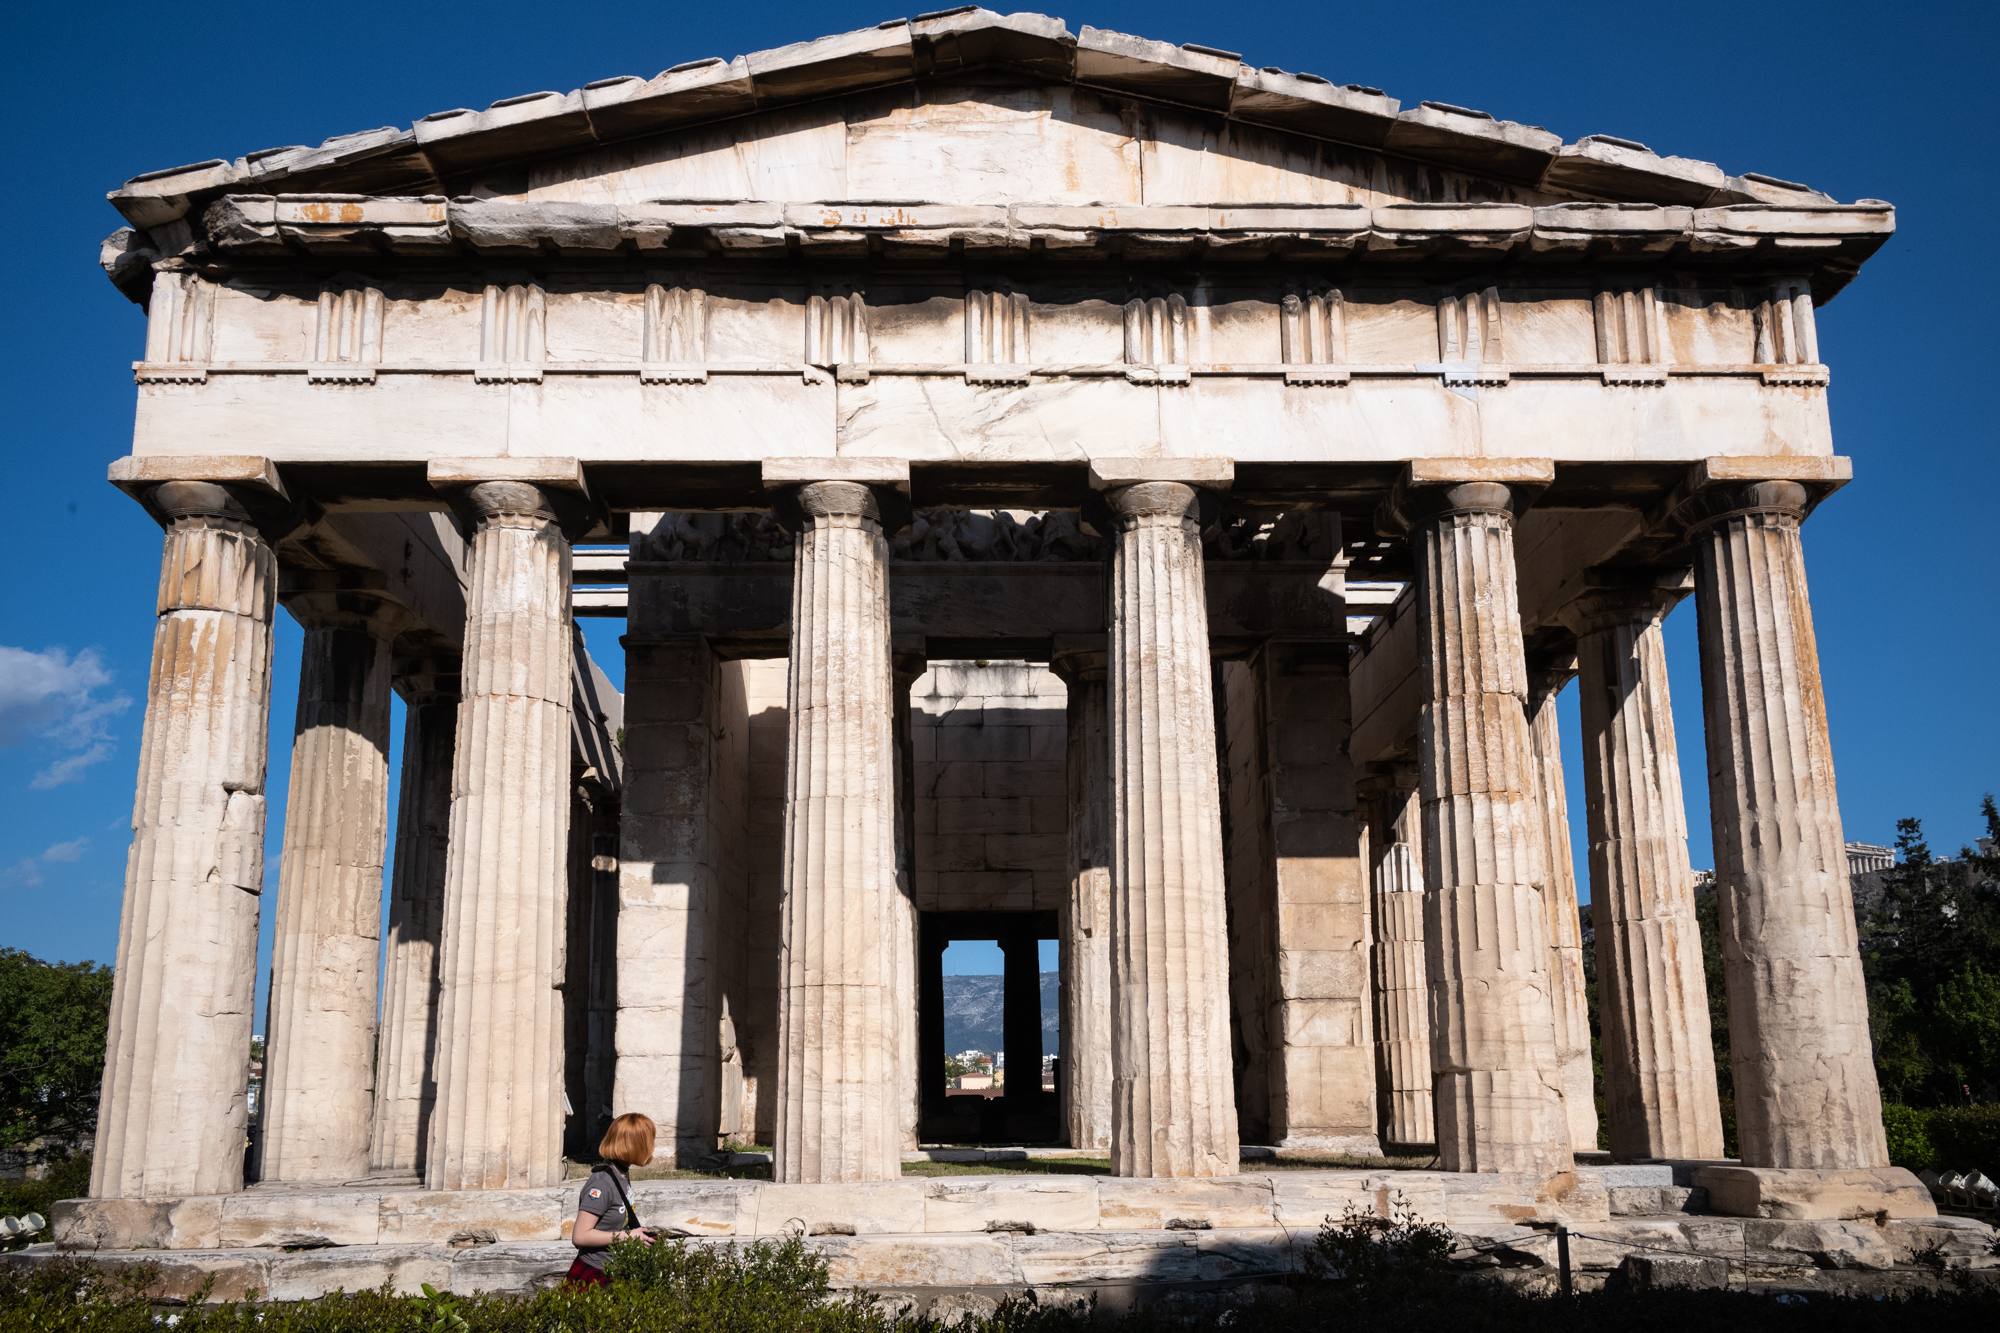 The Temple of Hephaestus in the Agora